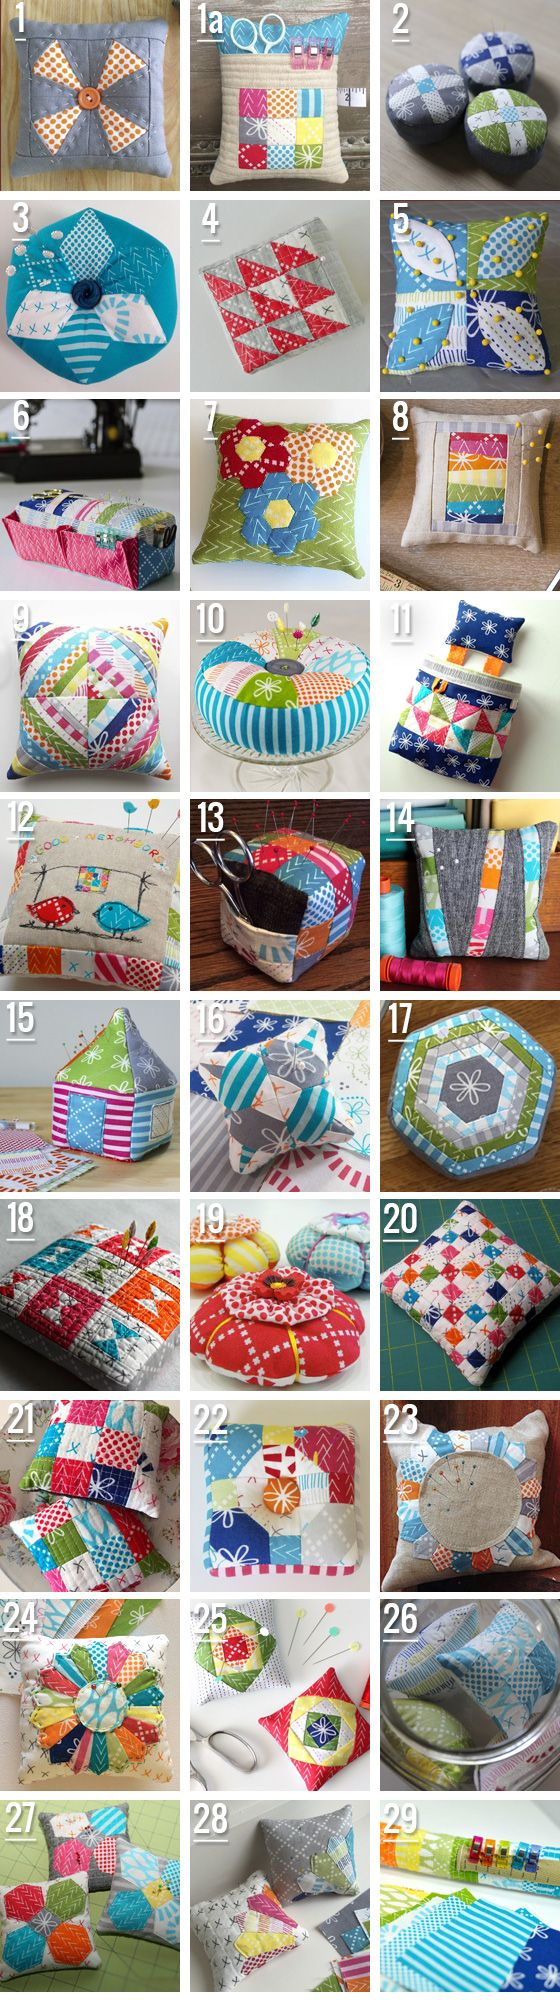 Good Neighbors Pincushion Party - A Giveaway - Notions - The Connecting Threads Staff Blog